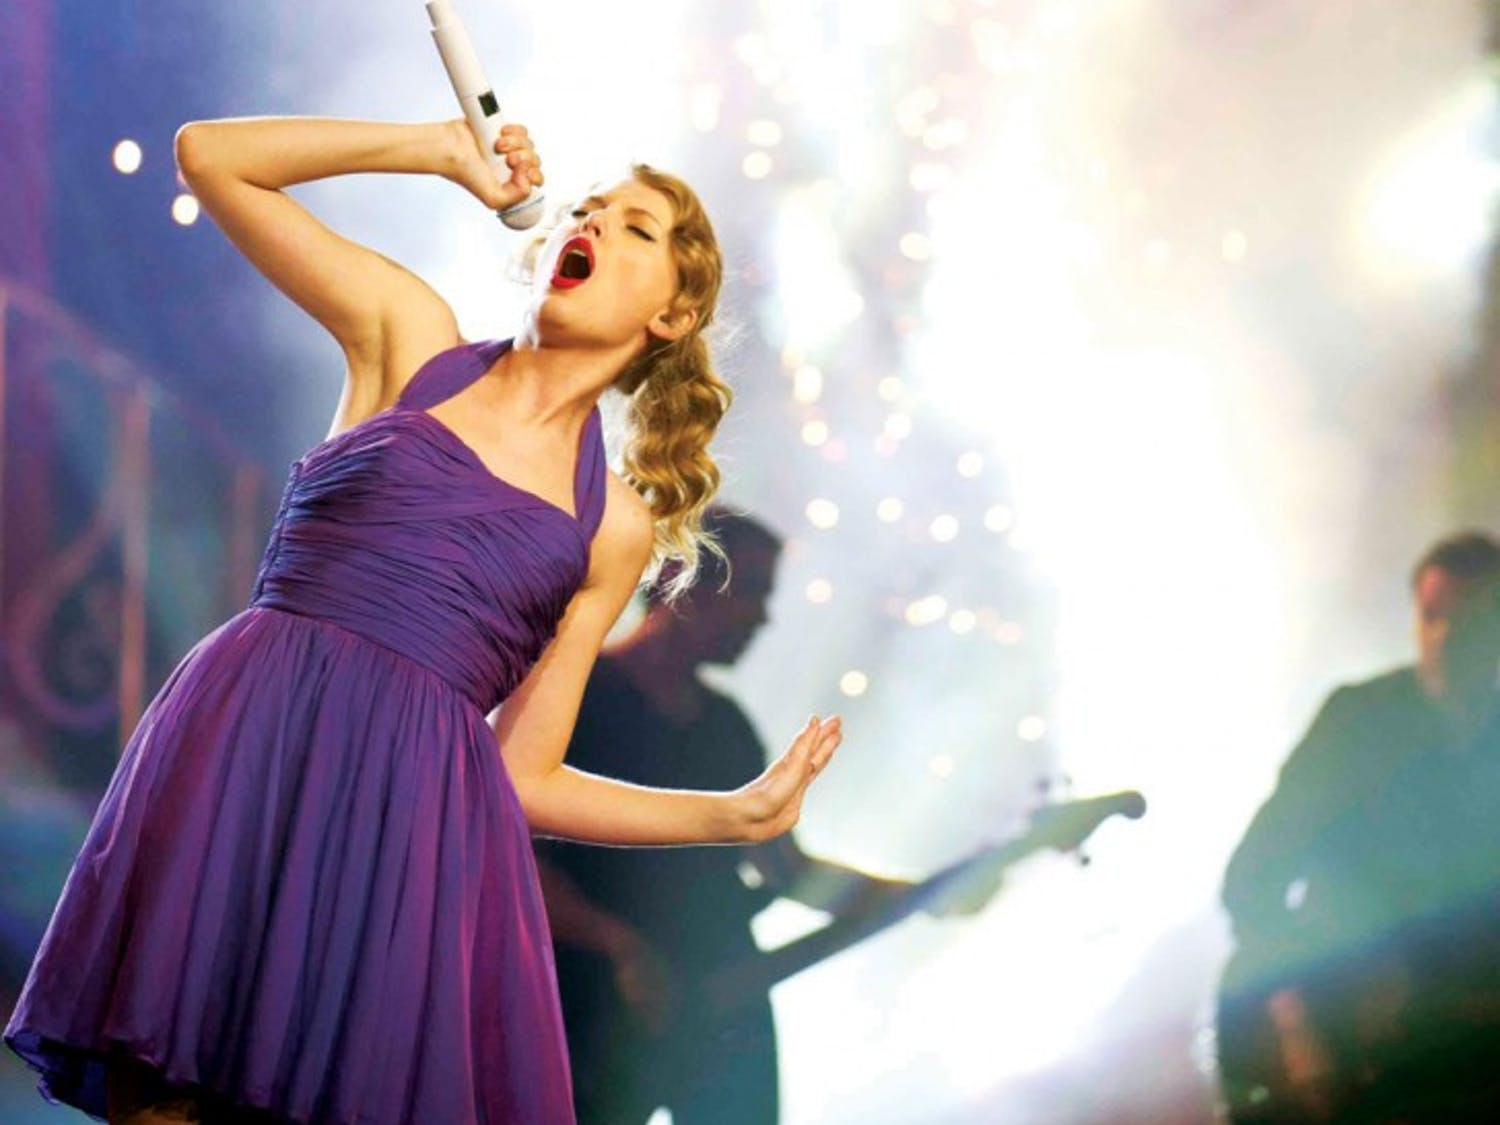 FILE - This Nov. 22, 2011 file photo shows singer Taylor Swift performing at Madison Square Garden in New York. Six-time Grammy winner Taylor Swift will perform at the 2012 MTV Video Music Awards next month. Comedian Kevin Hart will host the VMAs live from the Staples Center in Los Angeles on Sept. 6. (AP Photo/Charles Sykes, file)